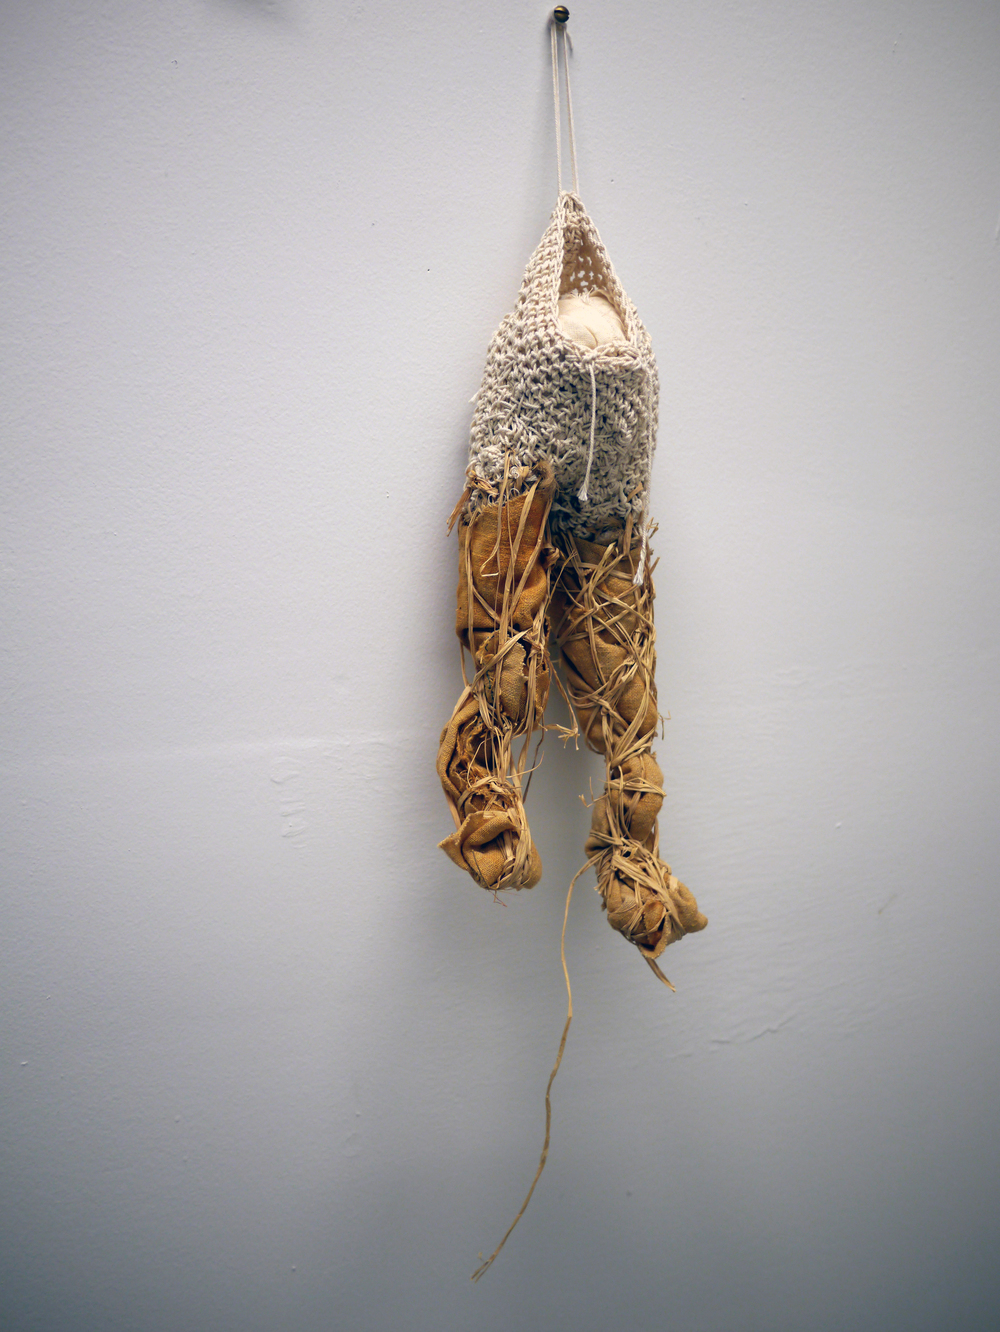 "Sarah Hewitt.  It . crocheted and woven cotton cord, raffia, rust dyed hemp, muslin. 24"" x 5"" x 3.5"". 2013."